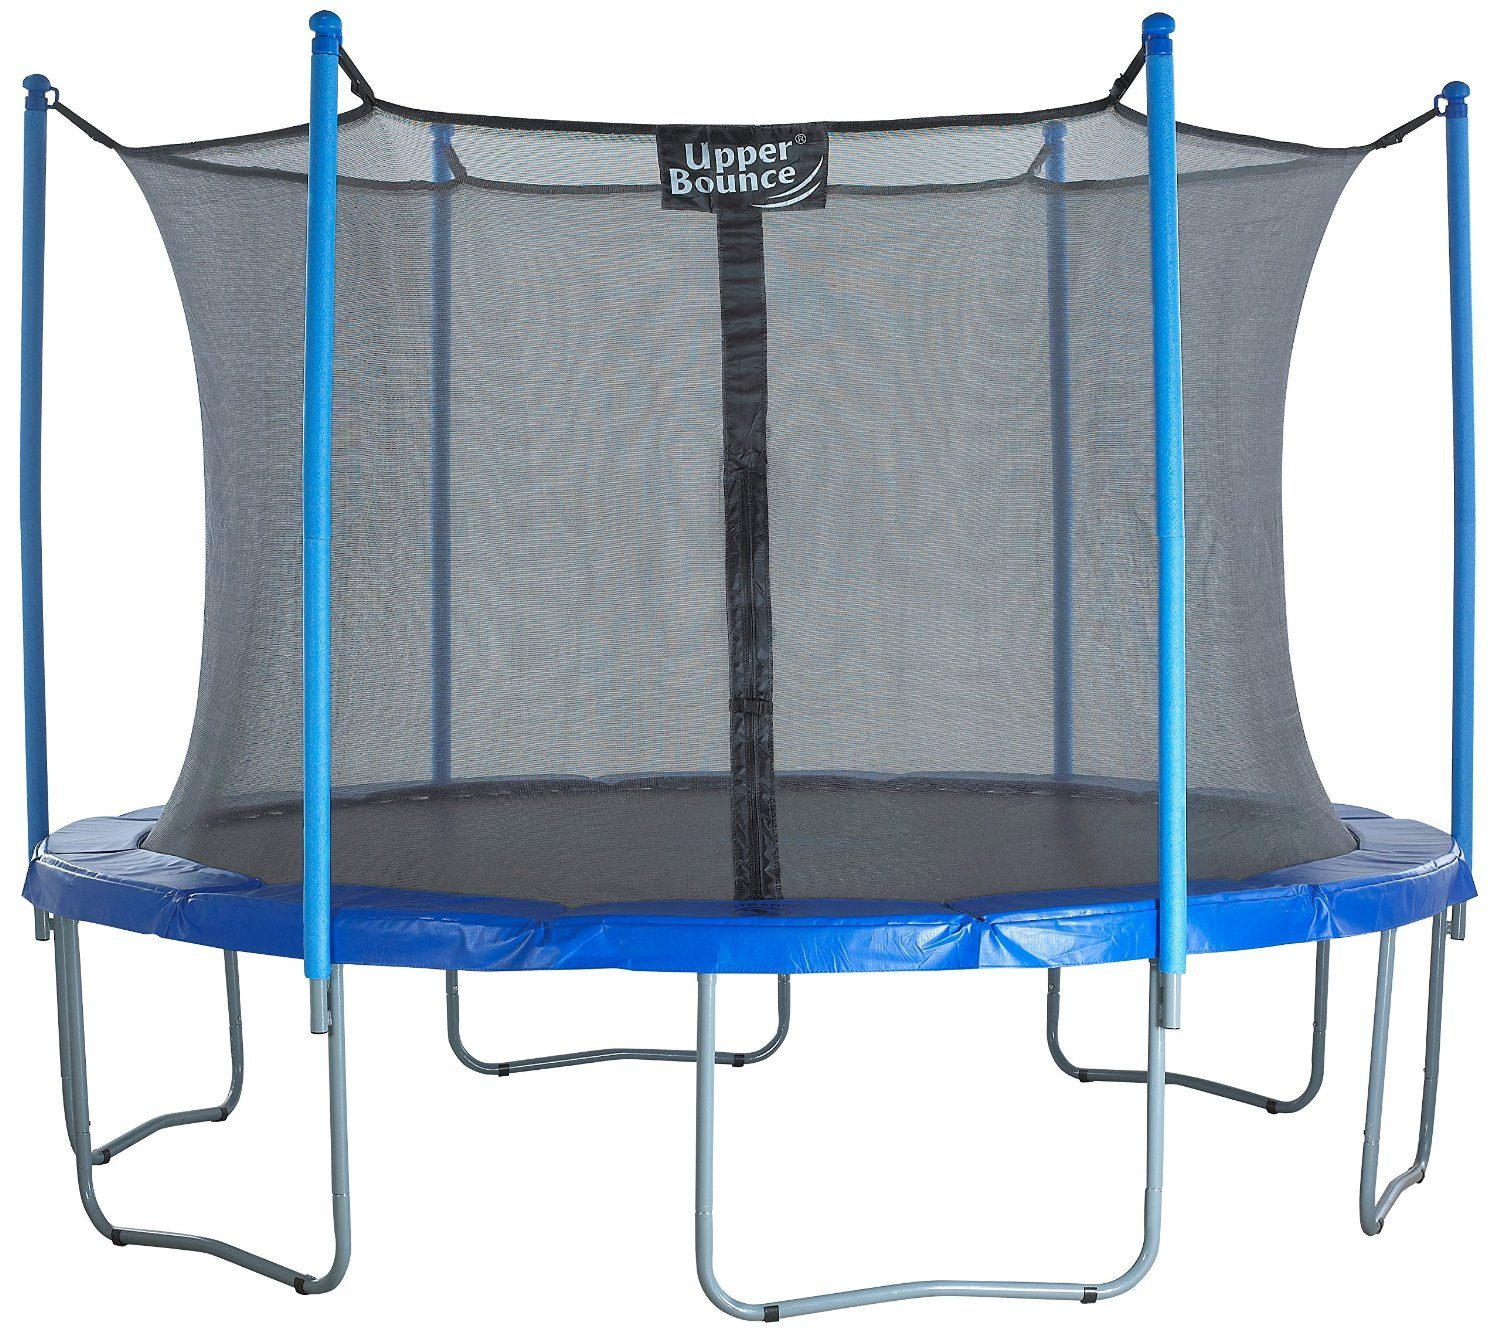 Airzone 14 Spring Trampoline And Enclosure Set: The Top 10 Trampolines We Could Find